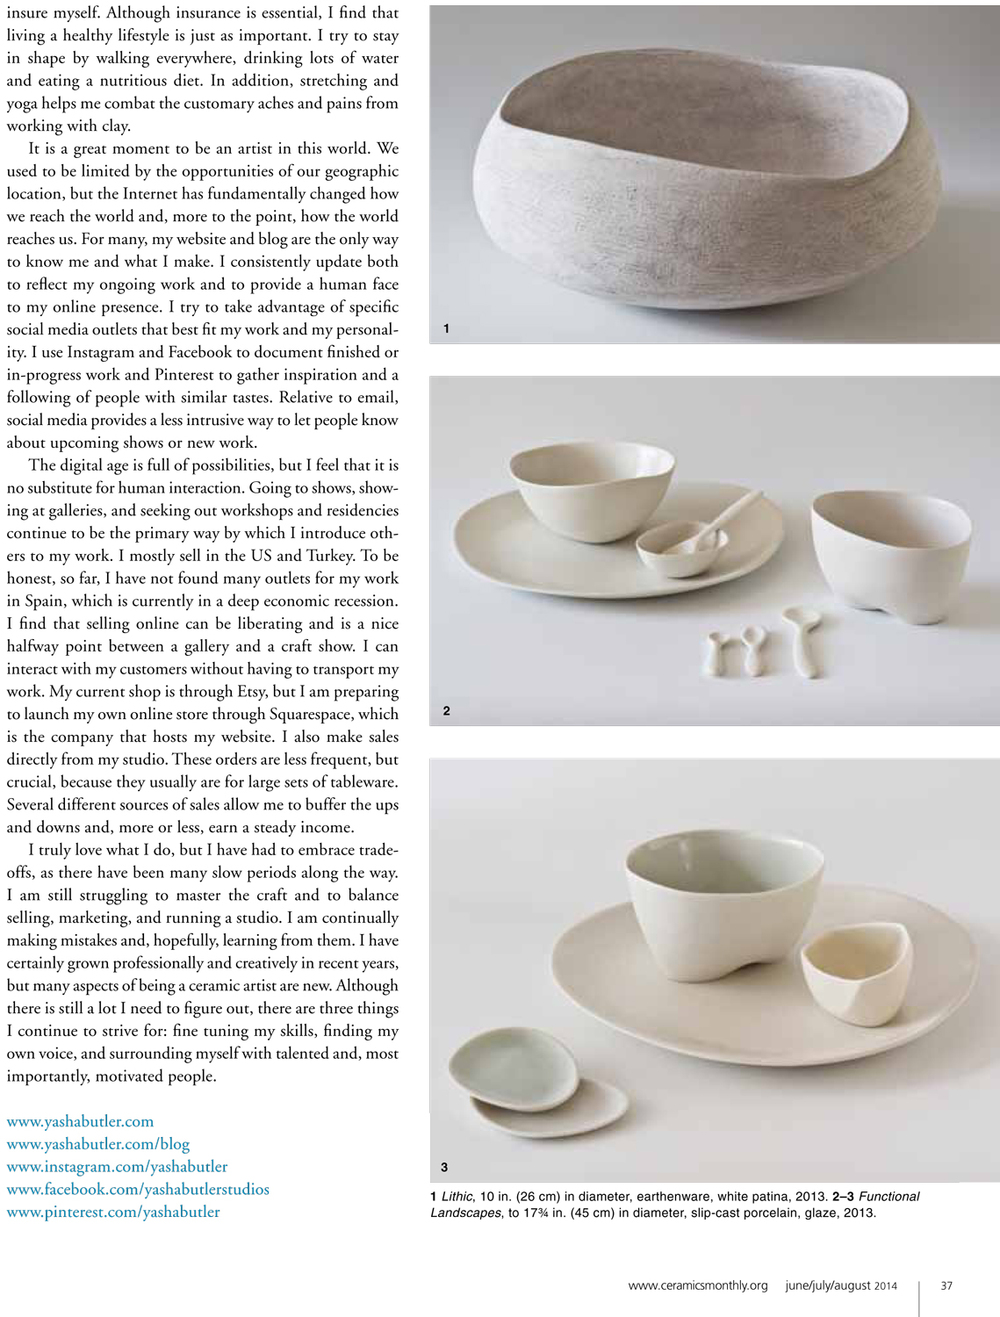 YashaButler_CeramicsMonthly_June2014_2_WEB.jpg